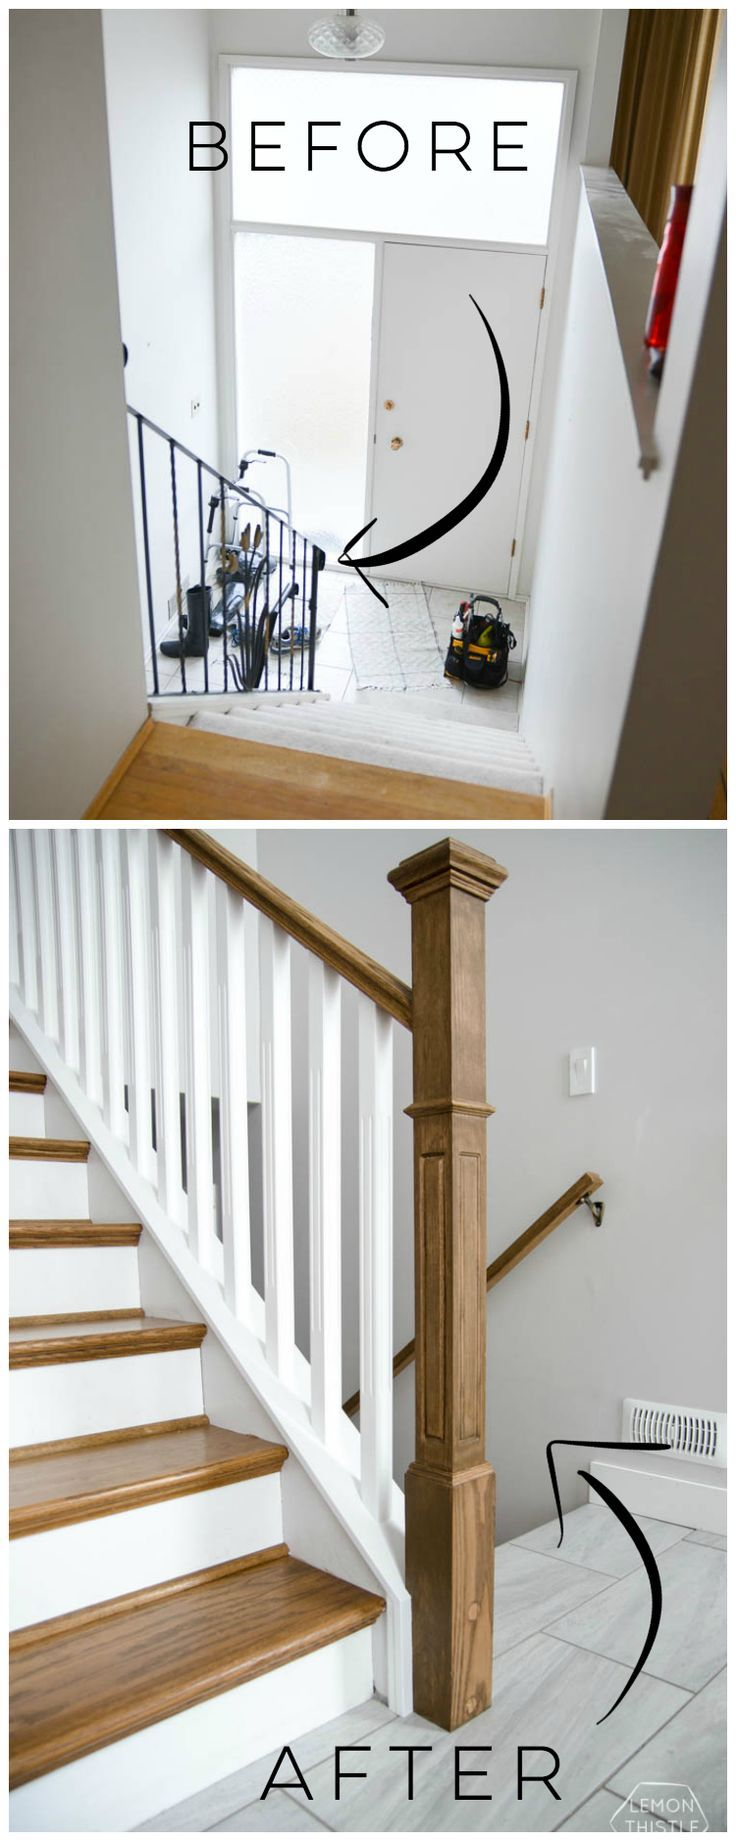 How to install a wooden handrail on split level stairs | House ...